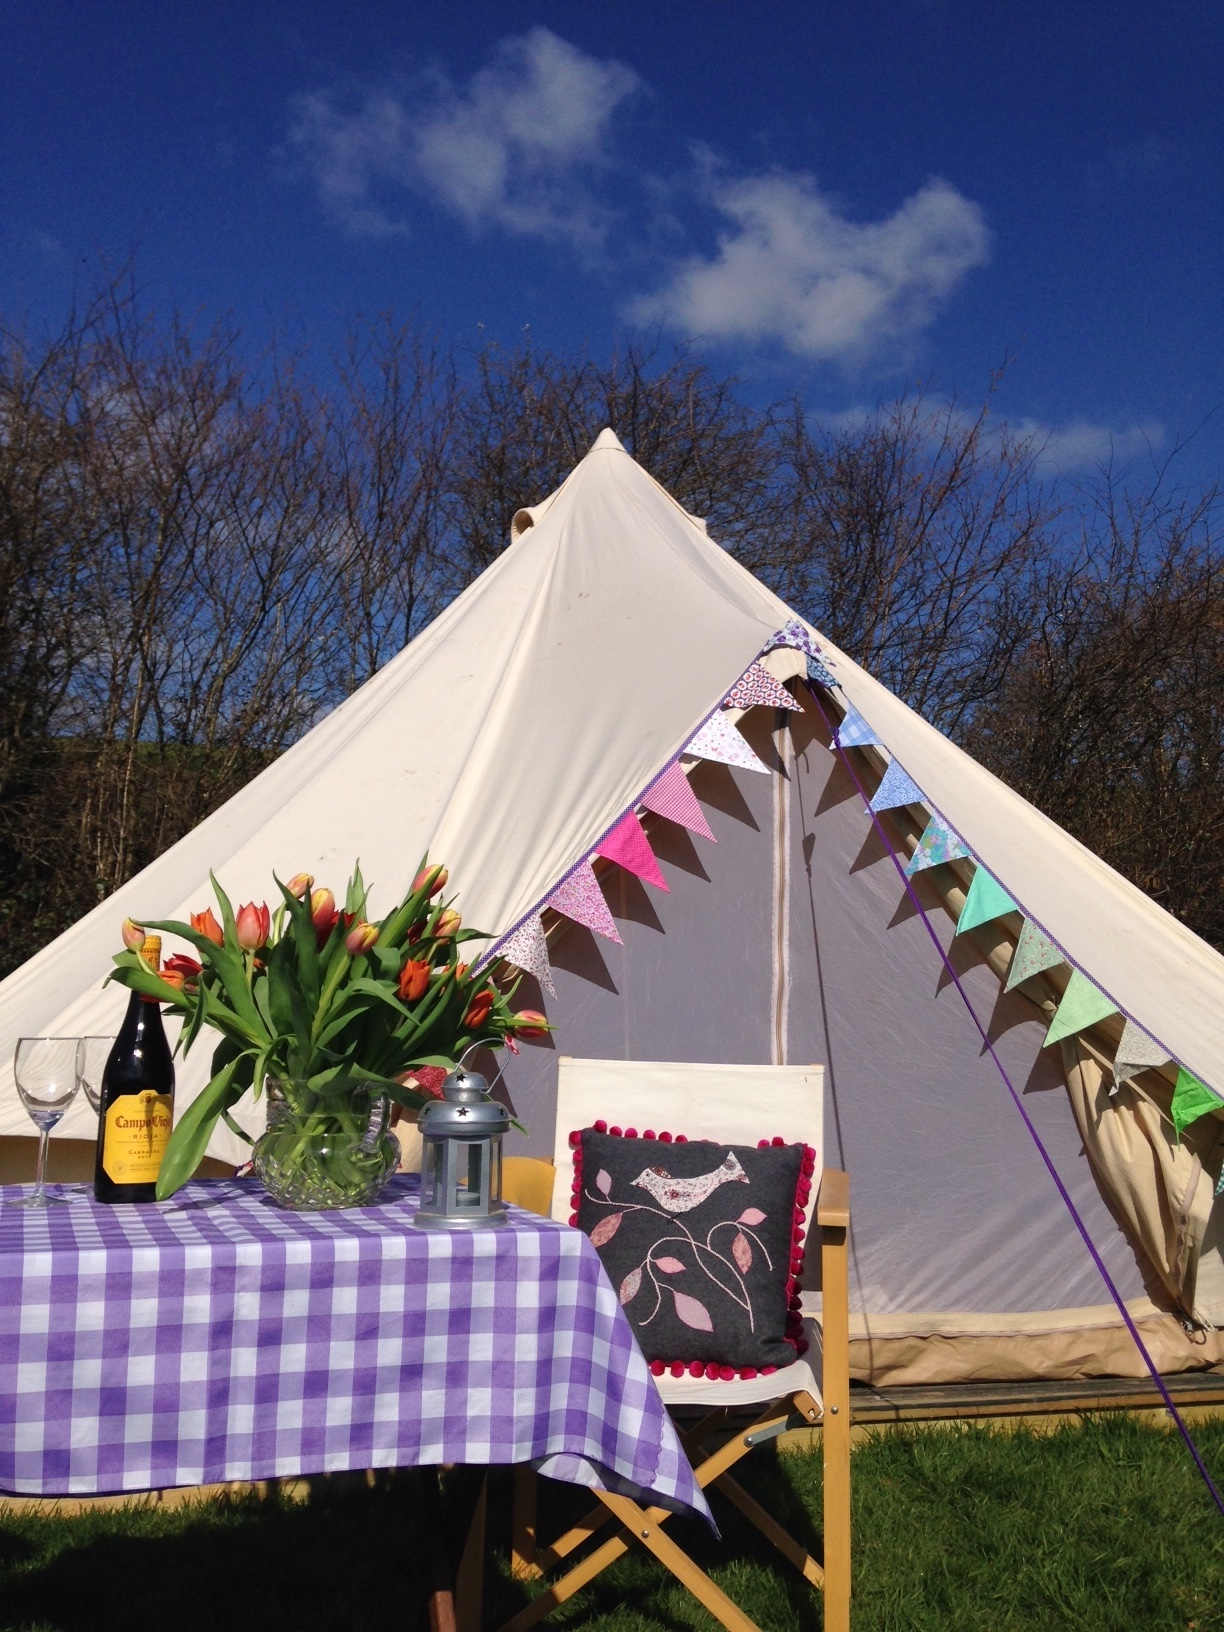 If camping is not really your thing, have you ever tried 'glamping'? Sleep under the stars but without the hassle of pitching your own tent!